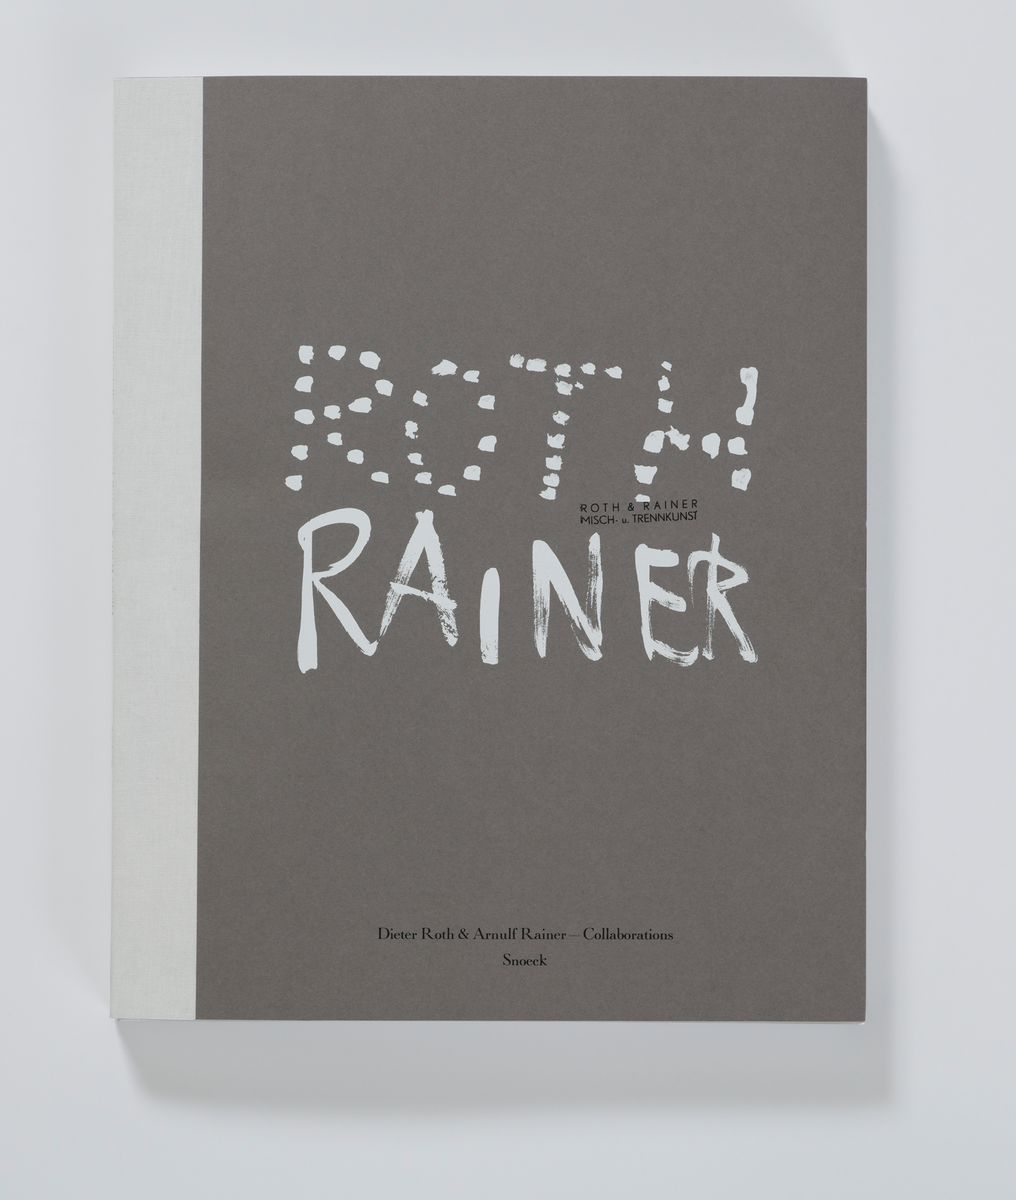 Dieter Roth & Arnulf Rainer - Collaborations